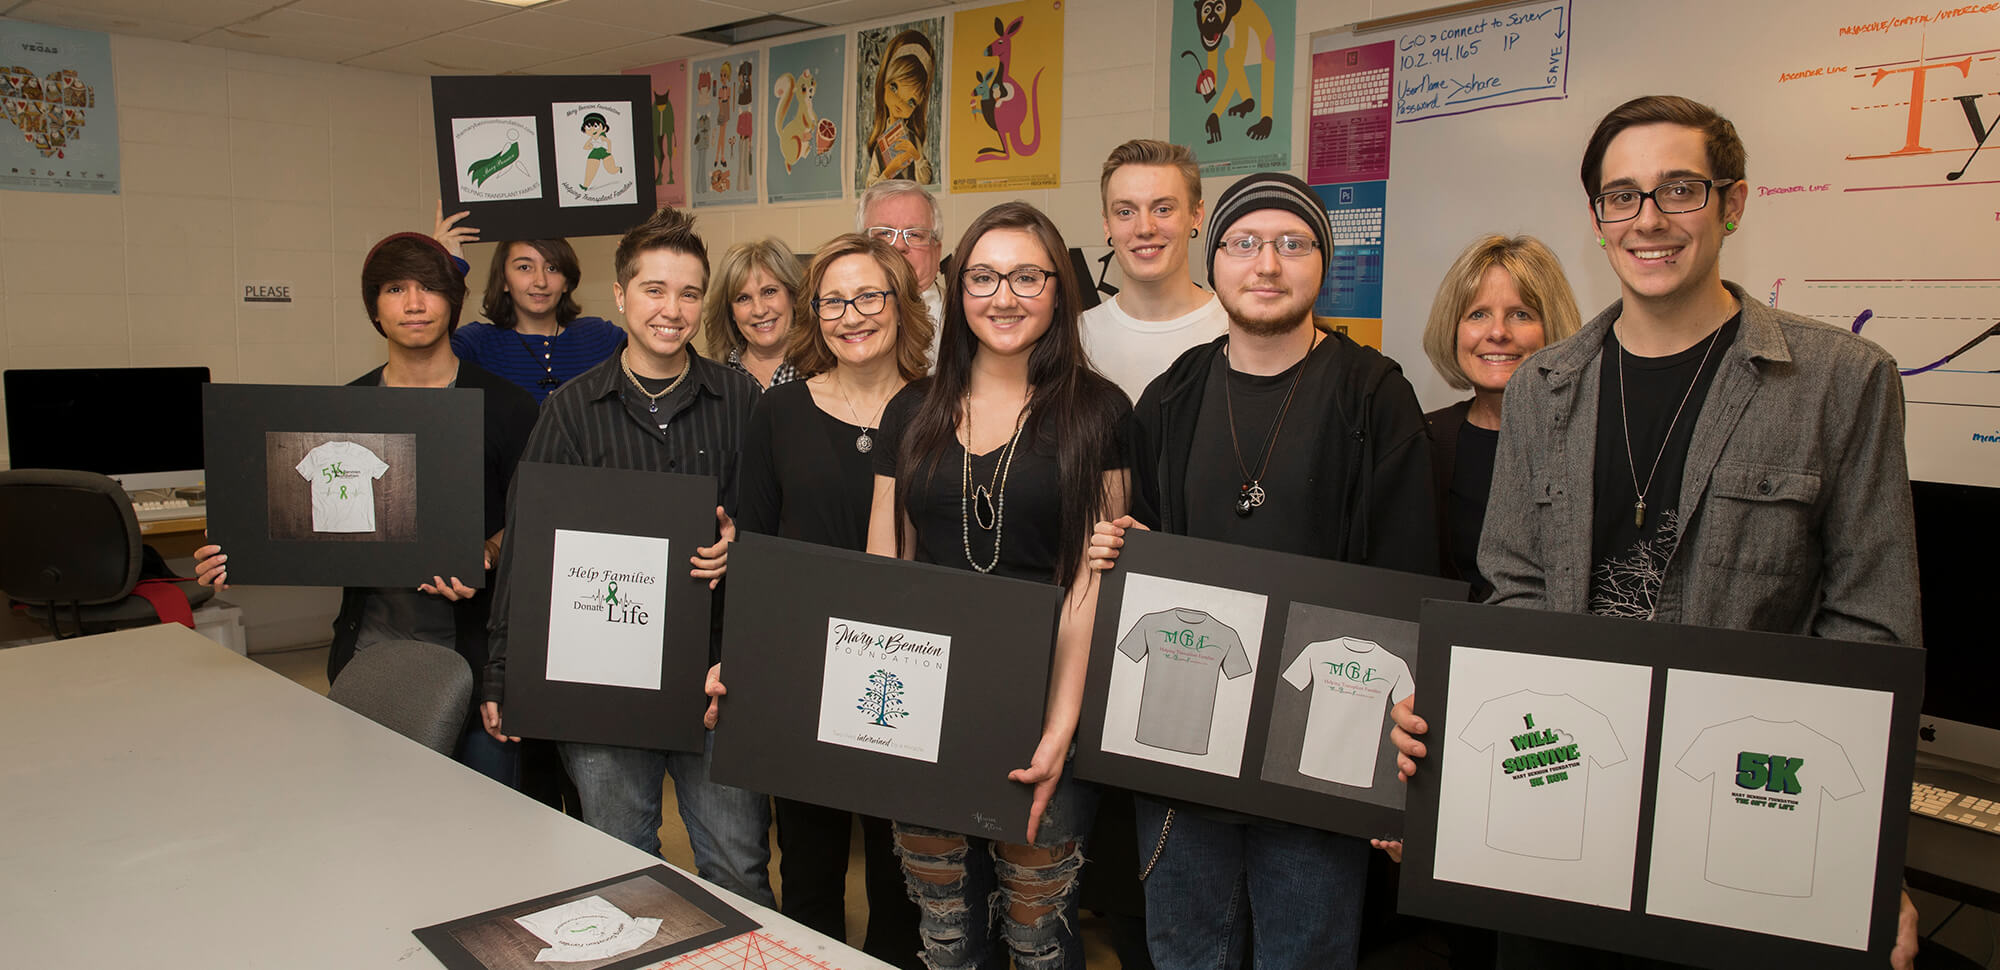 Graphic design students and artwork for contest.